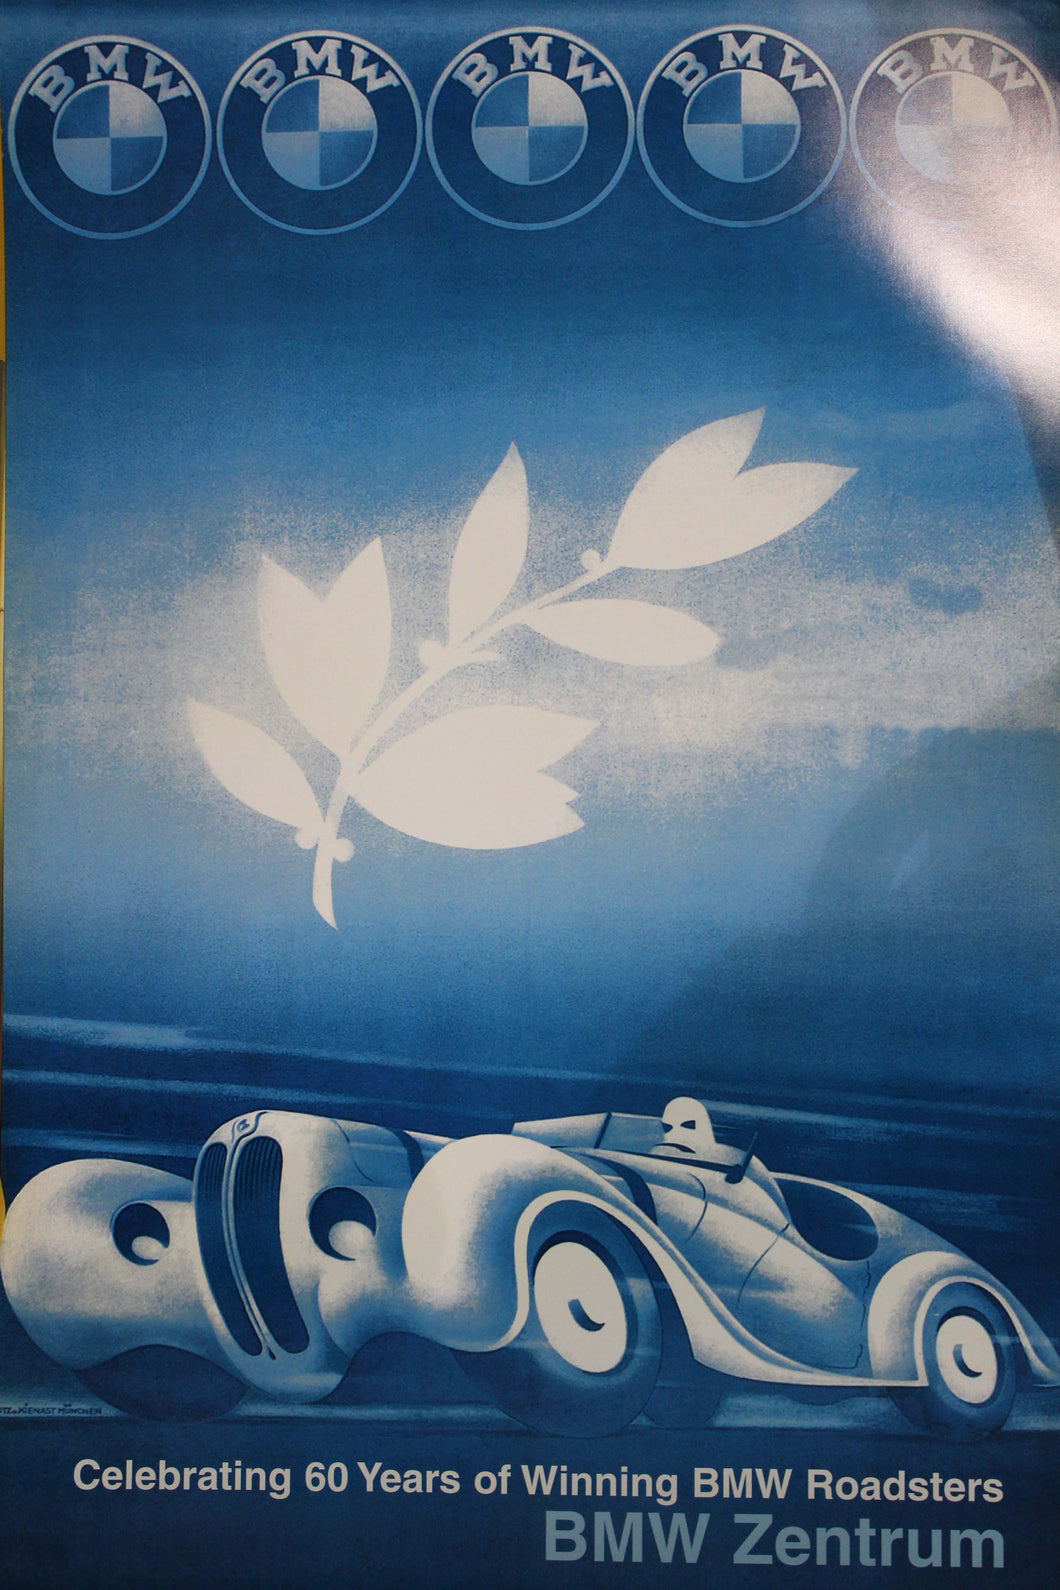 Poster - Celebrating 60 Years of Winning BMW Roadsters BMW Zentrum